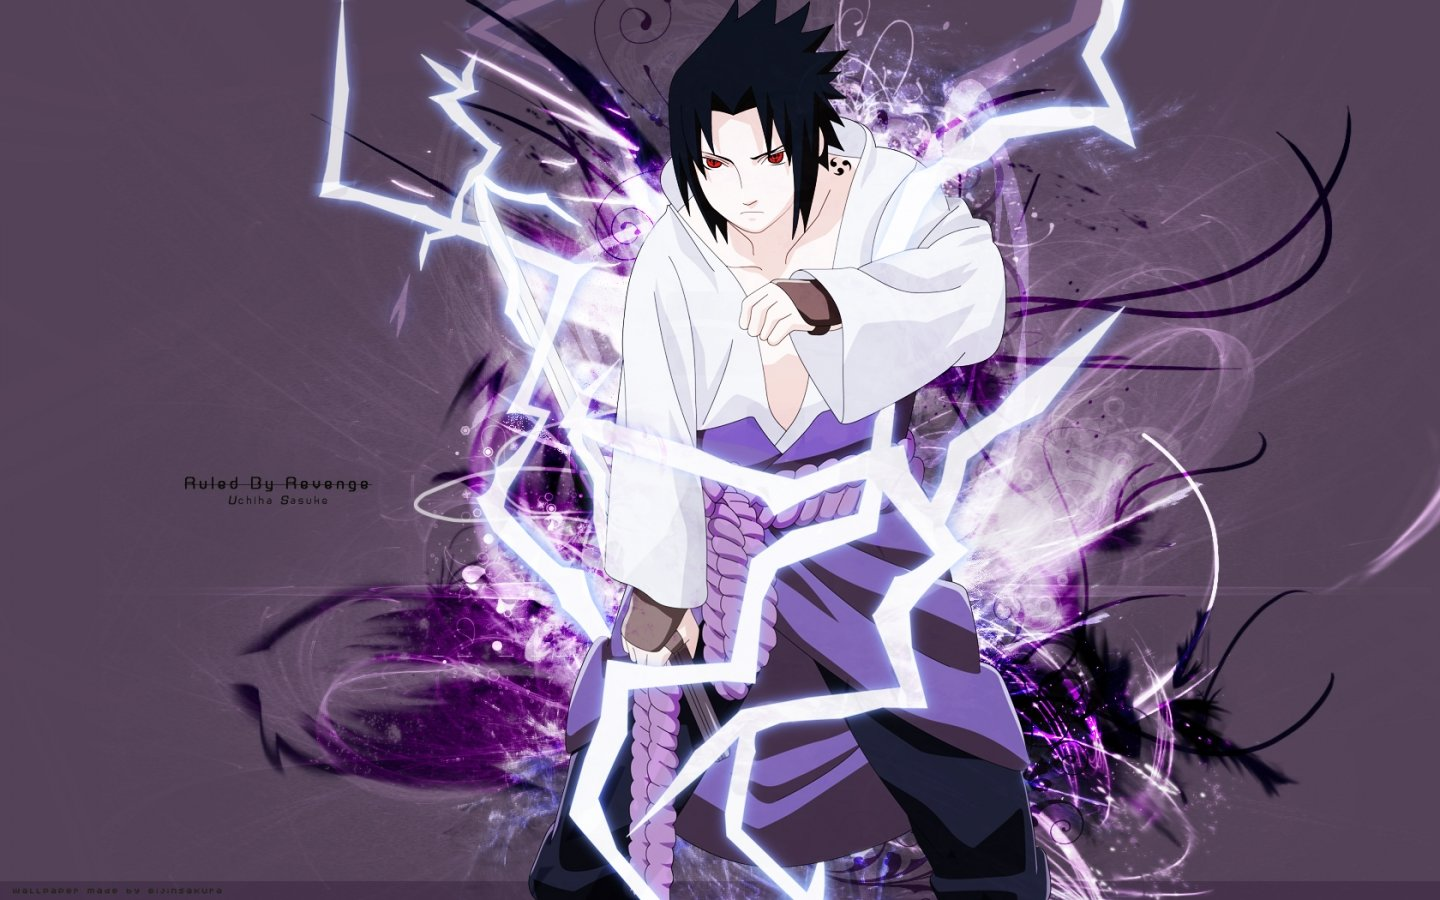 Free Download Sasuke Uchiha Wallpaper ID396585 Hd 1440x900 For PC